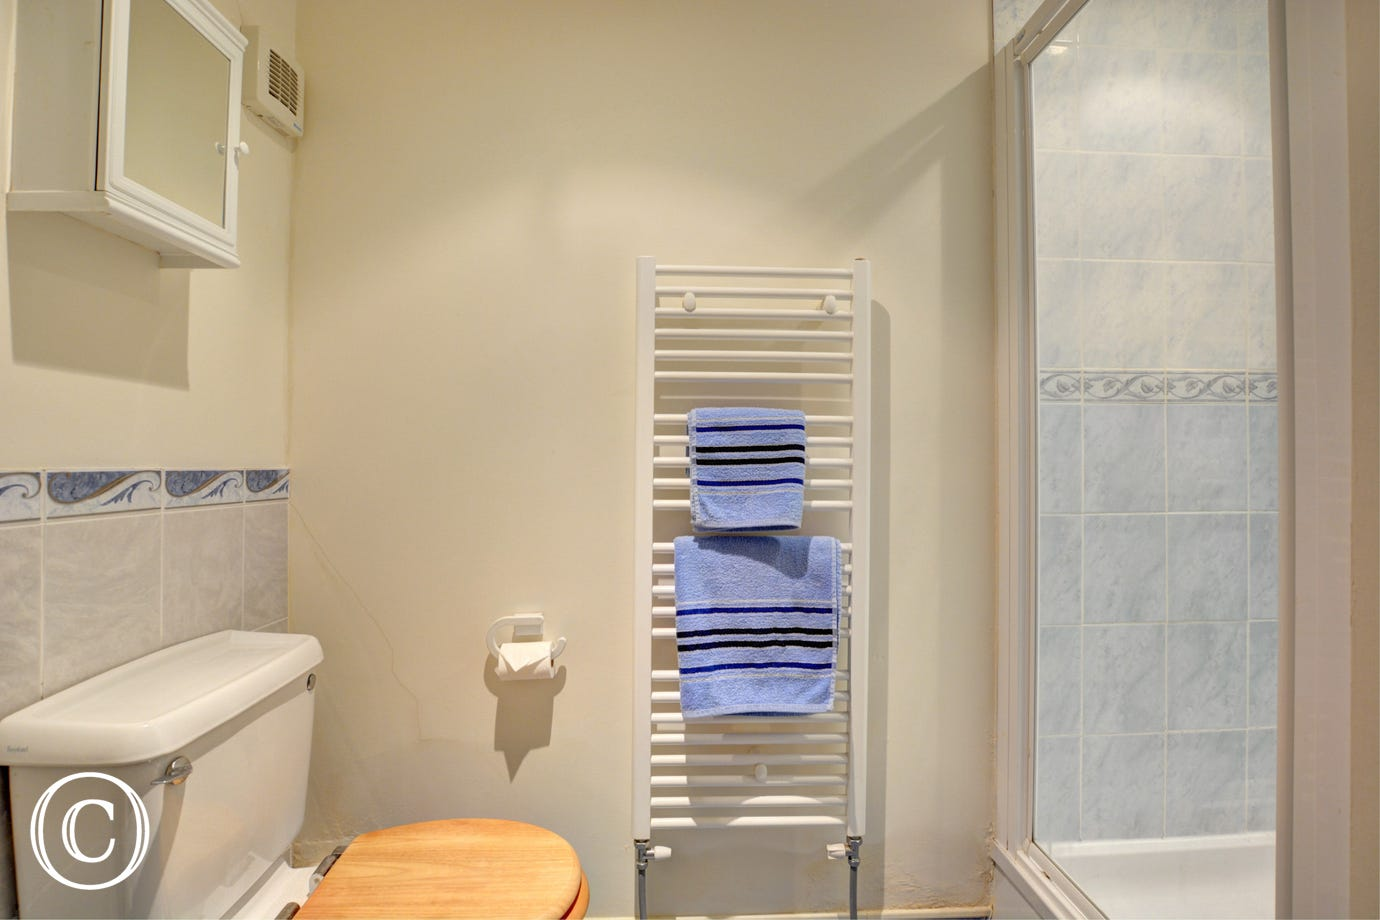 Modern and bright shower room with cubicle